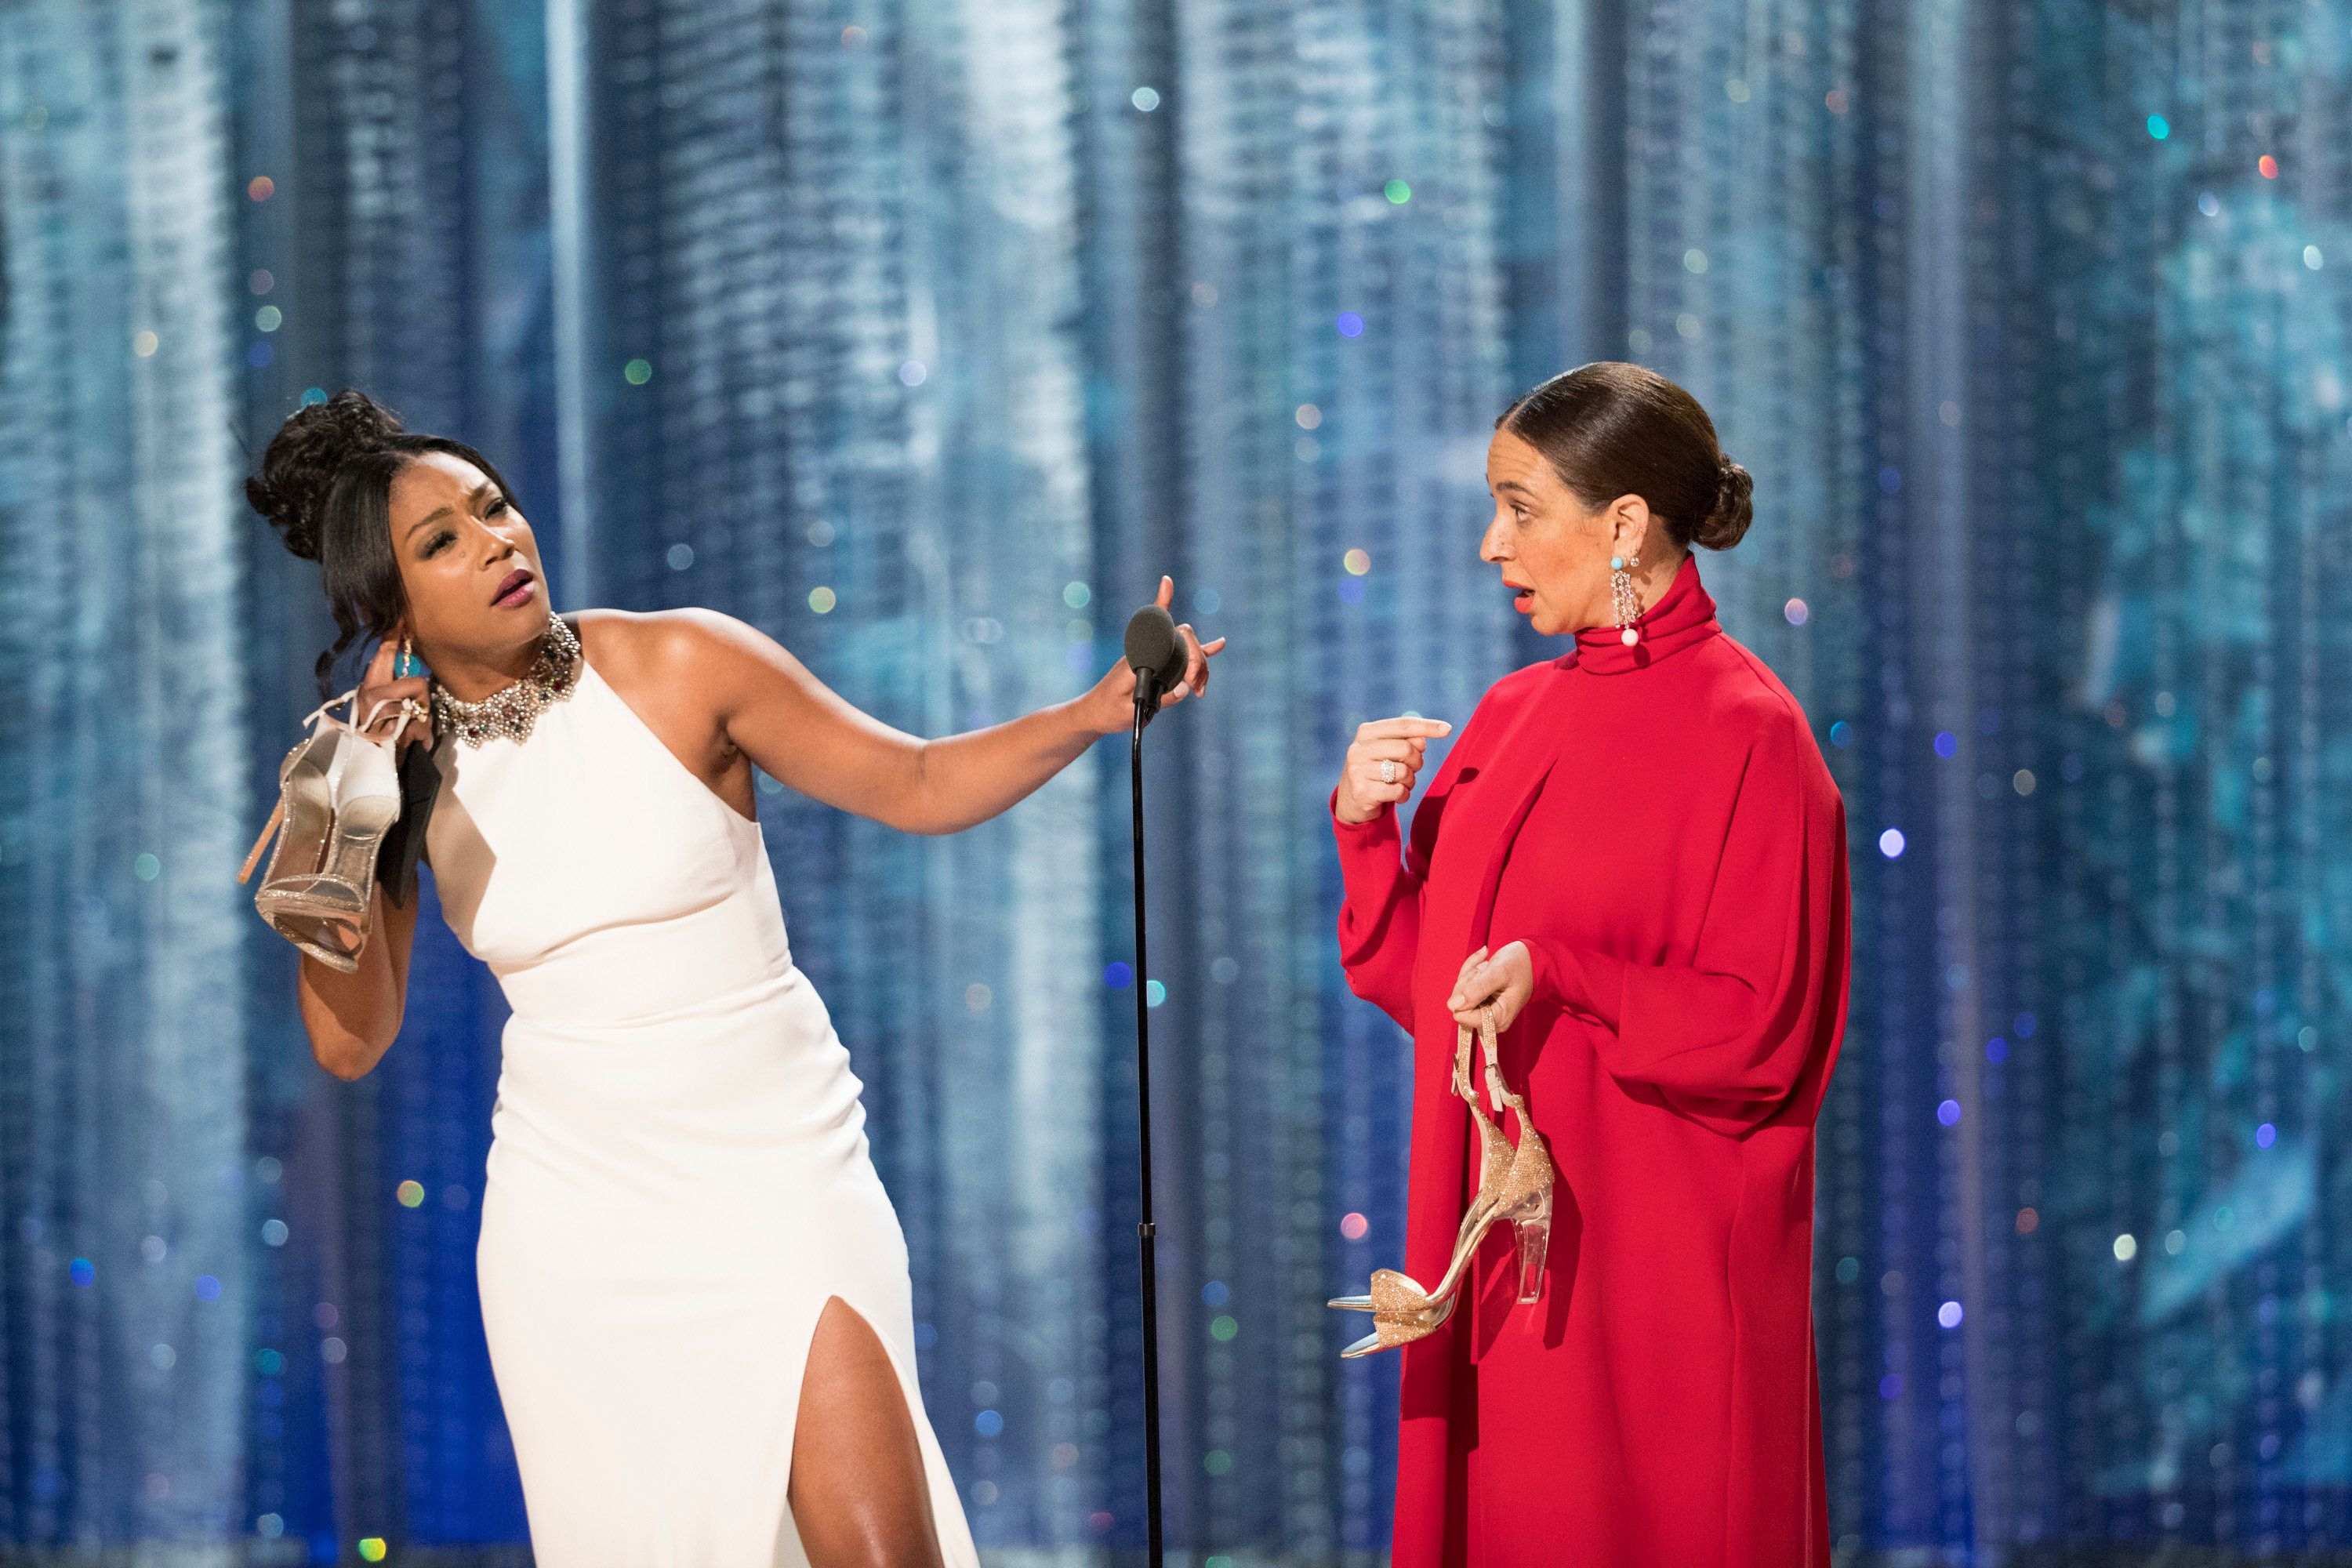 THE OSCARS(r) - The 90th Oscars(r)  broadcasts live on Oscar(r) SUNDAY, MARCH 4, 2018, at the Dolby Theatre® at Hollywood & Highland Center® in Hollywood, on the ABC Television Network. (Craig Sjodin via Getty Images) TIFFANY HADDISH, MAYA RUDOLPH